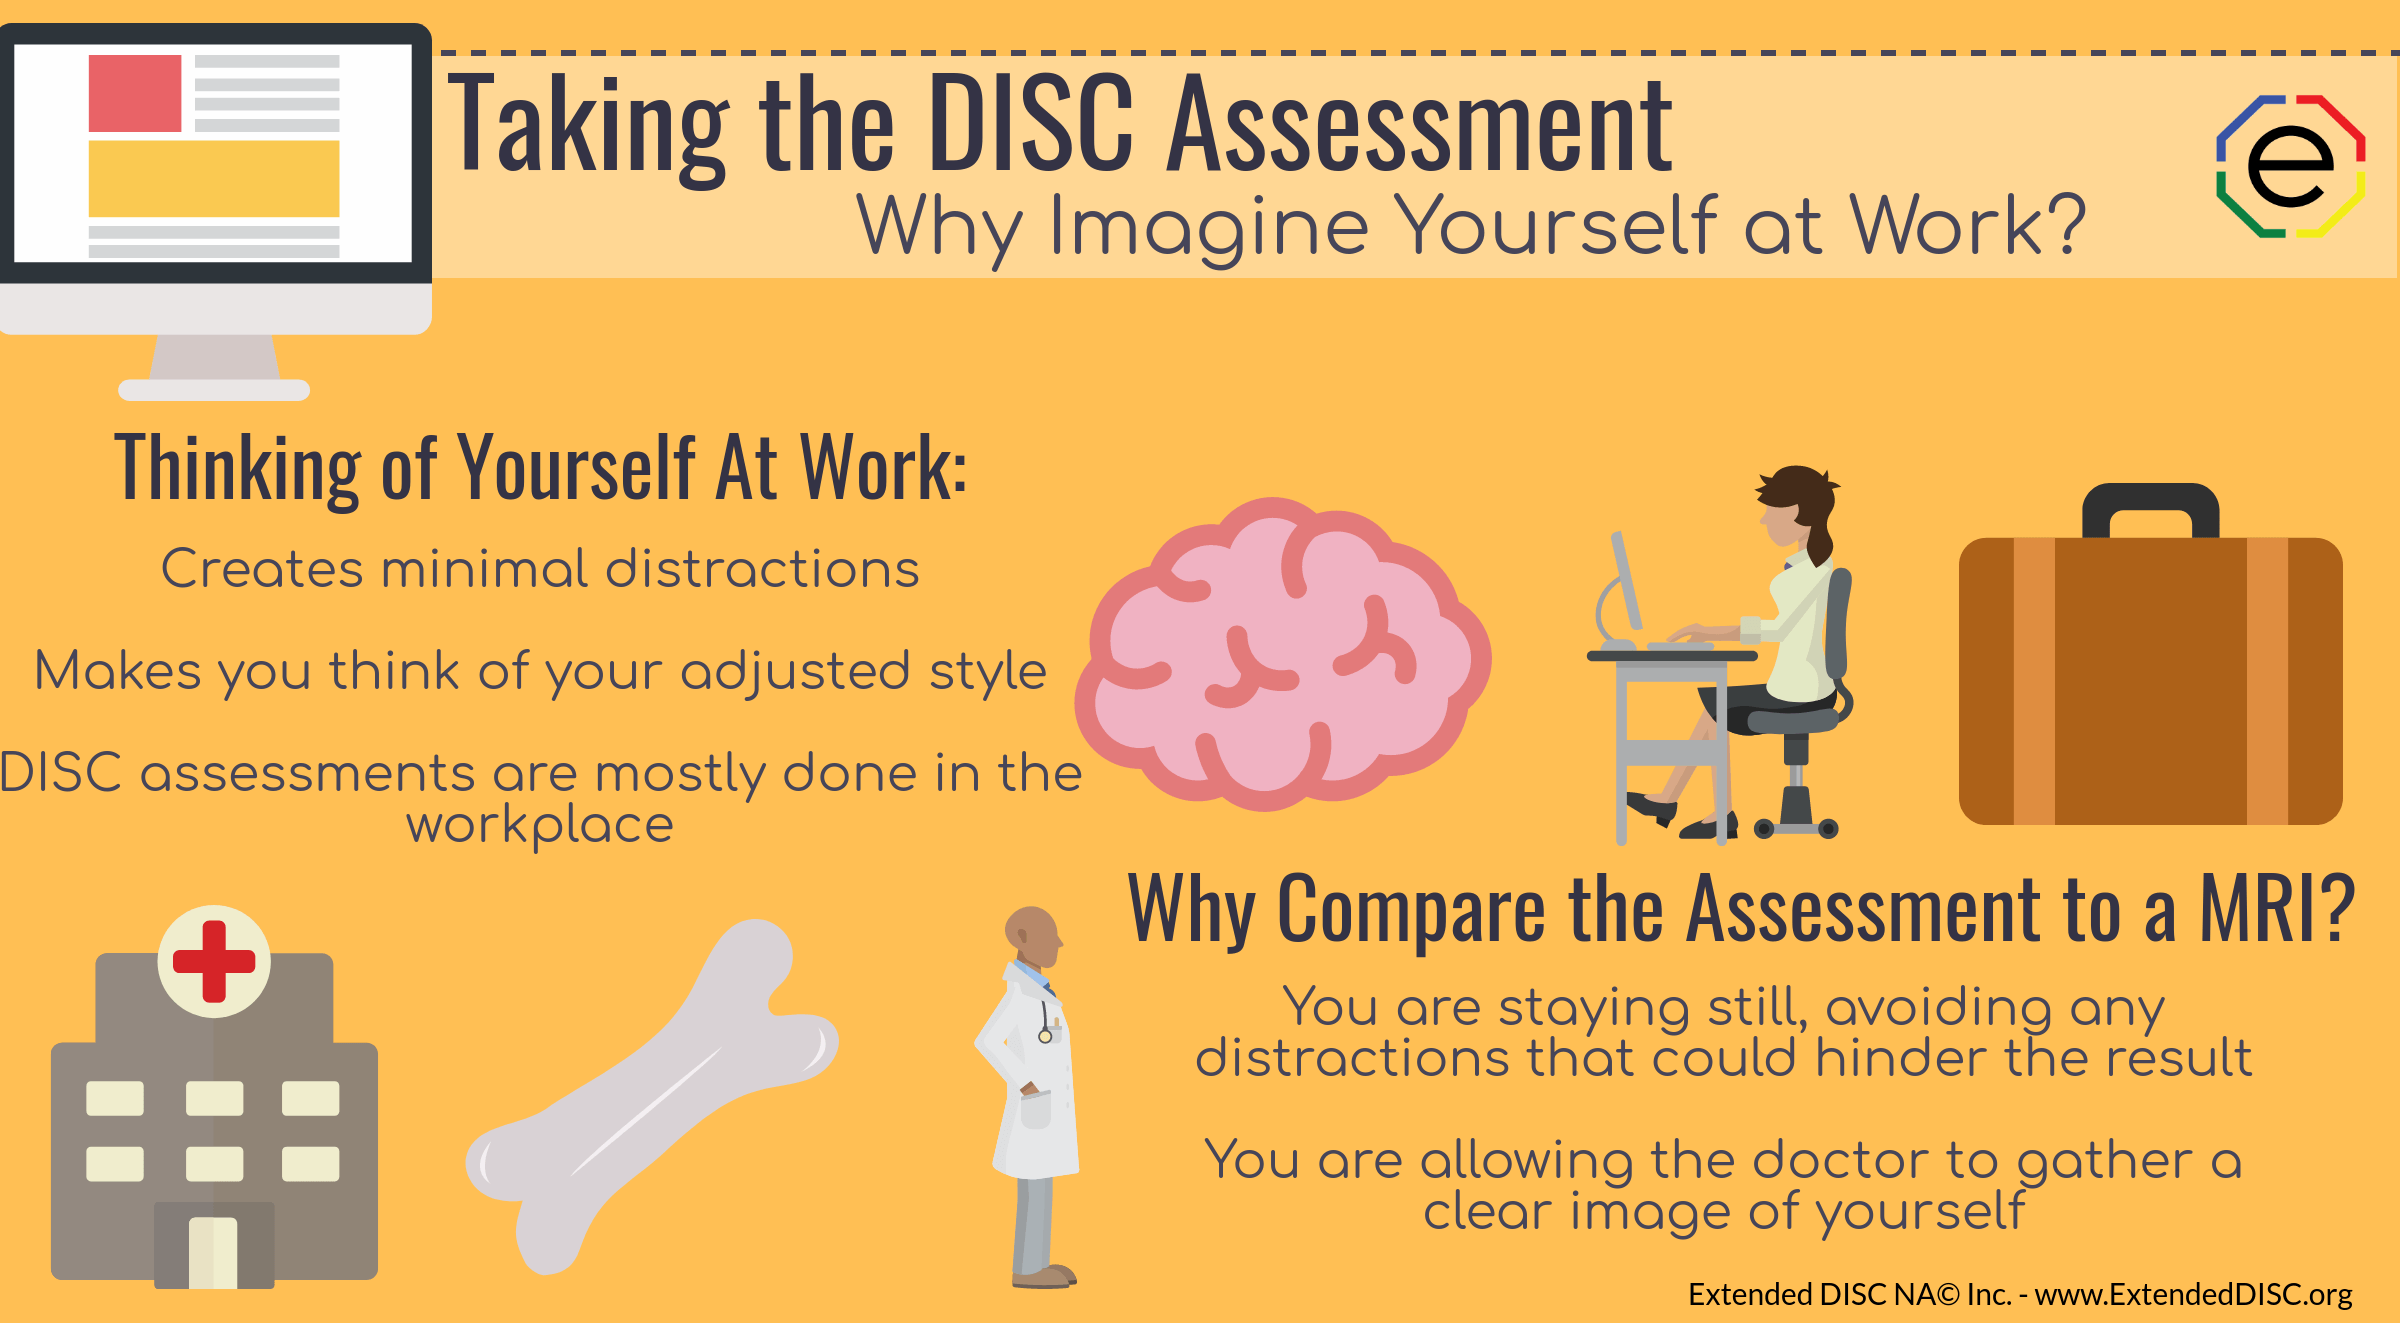 Taking the DISC assessment with work in mind